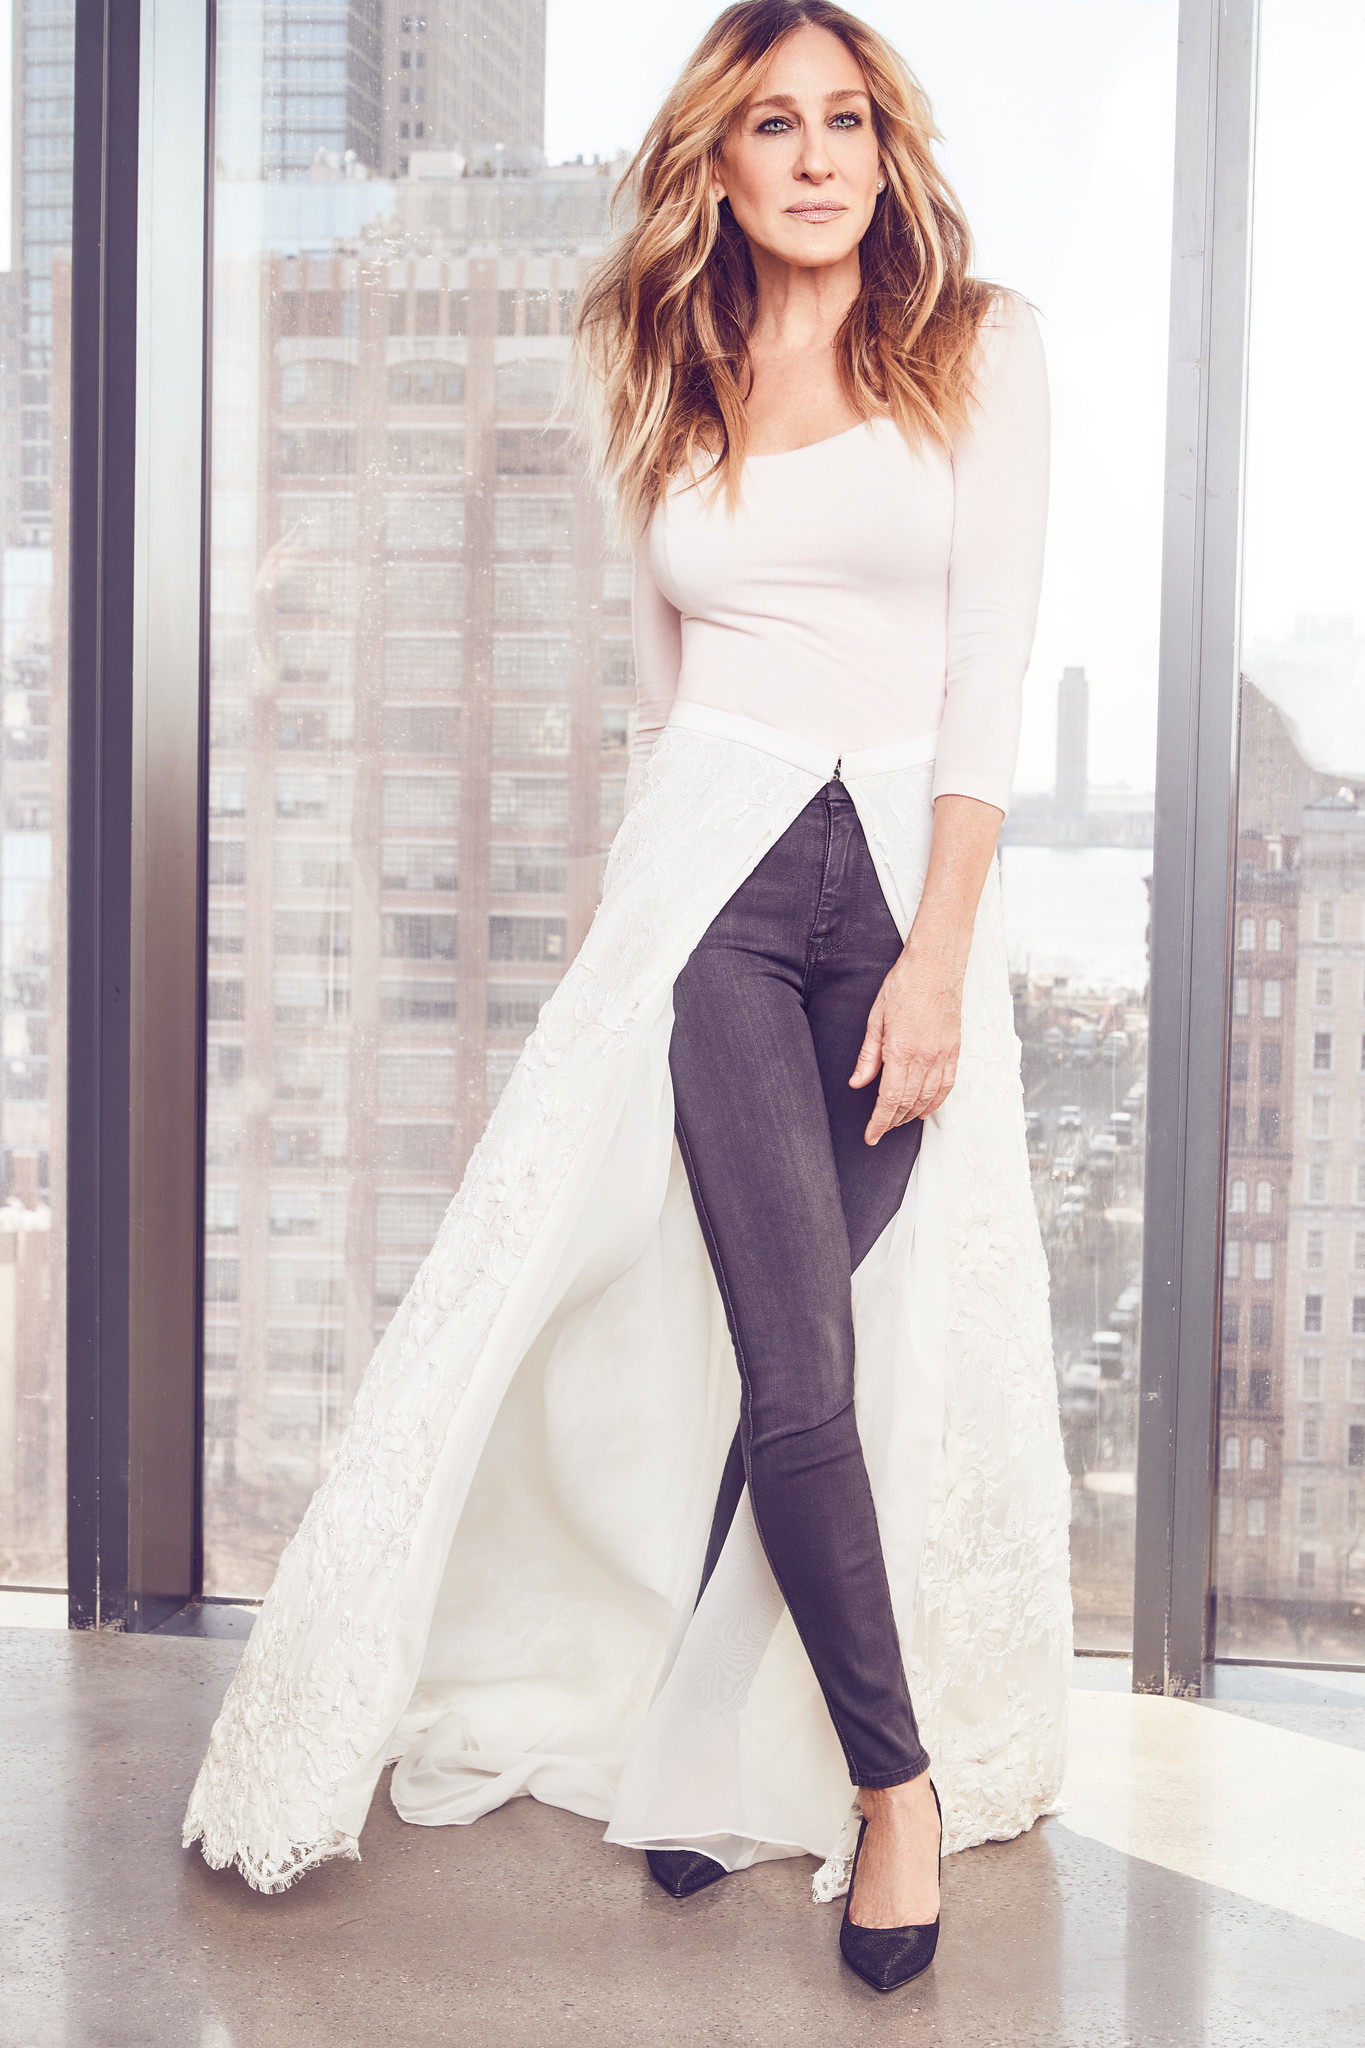 Sarah Jessica Parker in one of her bridal looks for Gilt.